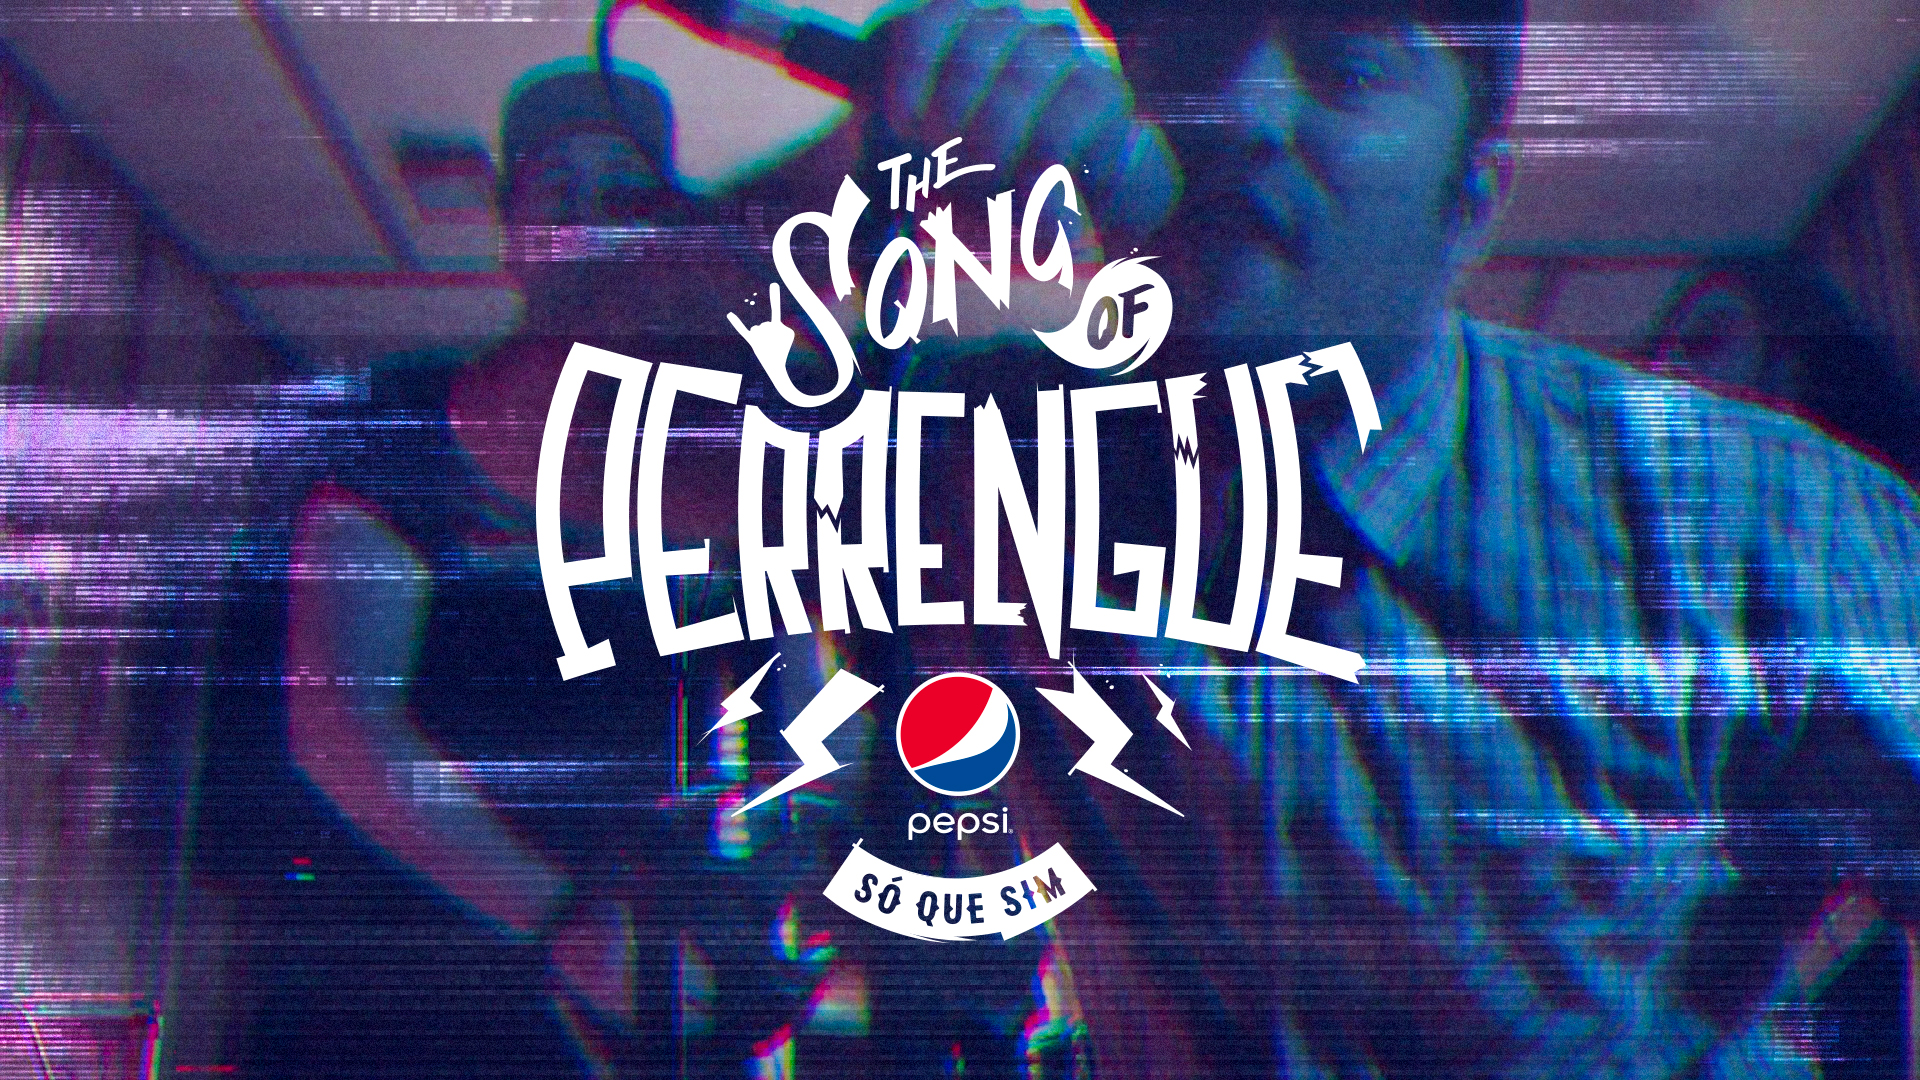 Pepsi lança música sobre as histórias de perrengues em nome do rock